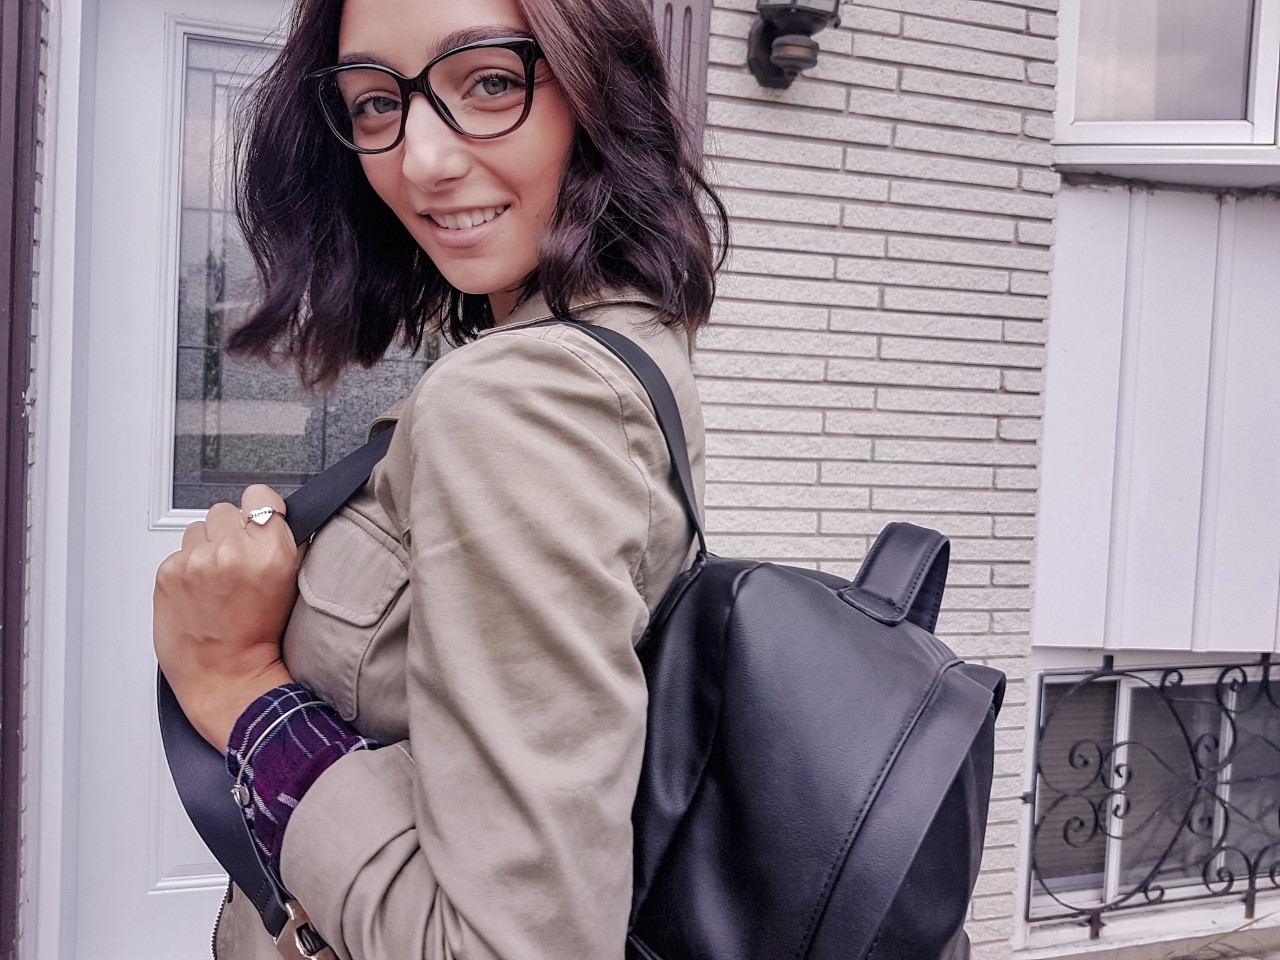 back to school, backpack, lifestyle, style, personal style, fashion blogger, school style, shopping, handbags, Canadian blogger, Zara backpack, luxury handbags,